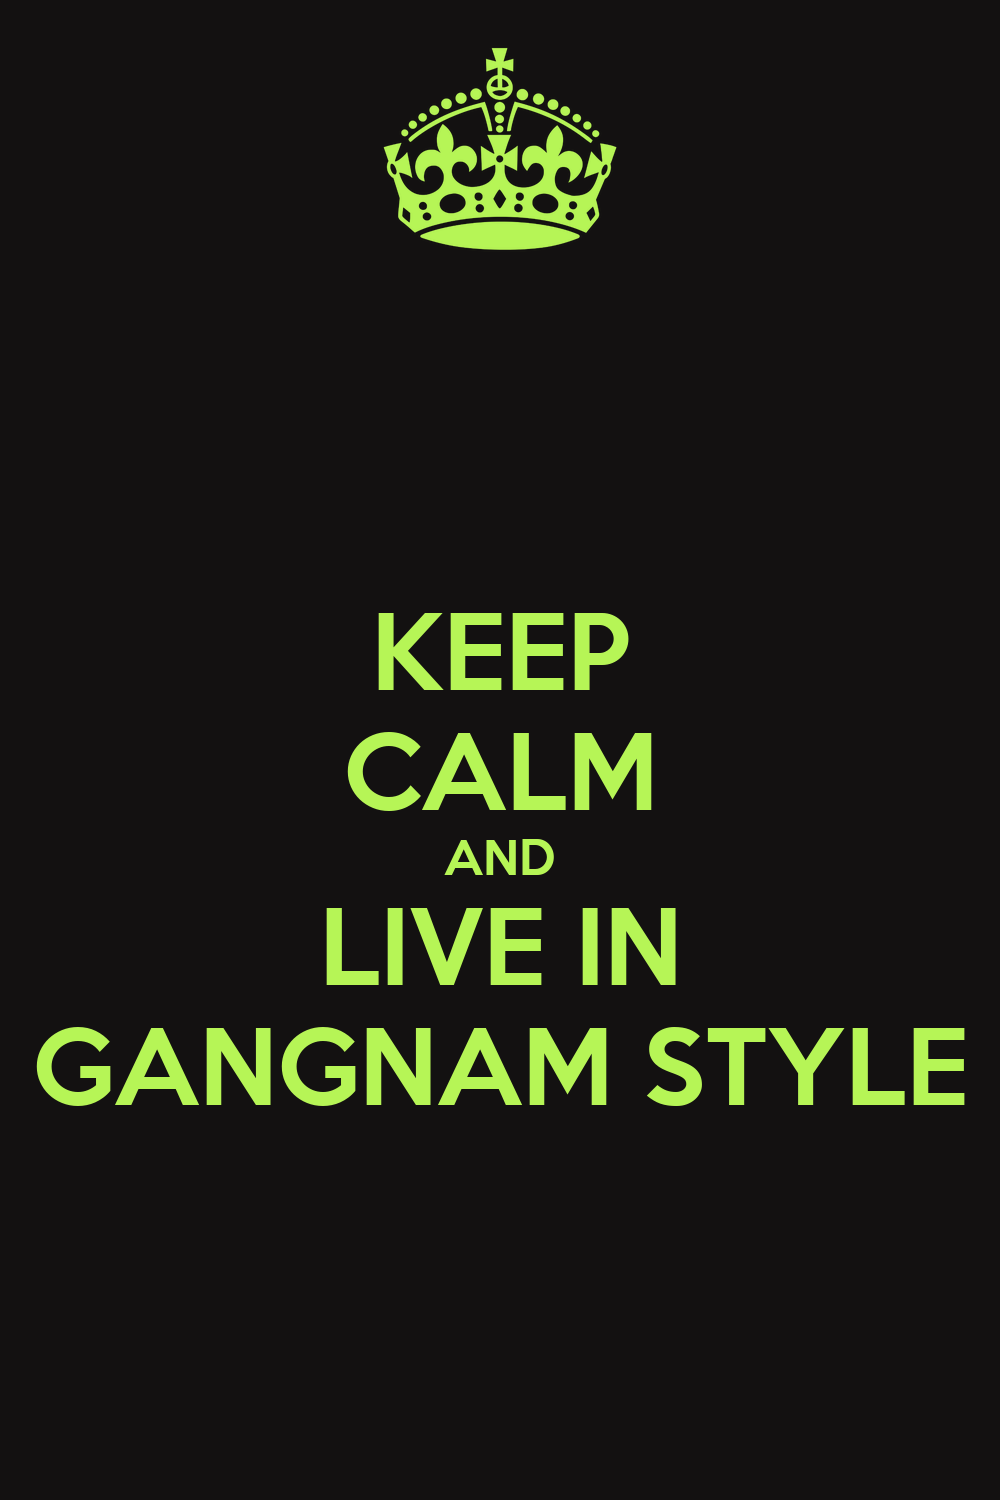 KEEP CALM AND LIVE IN GANGNAM STYLE - KEEP CALM AND CARRY ON Image